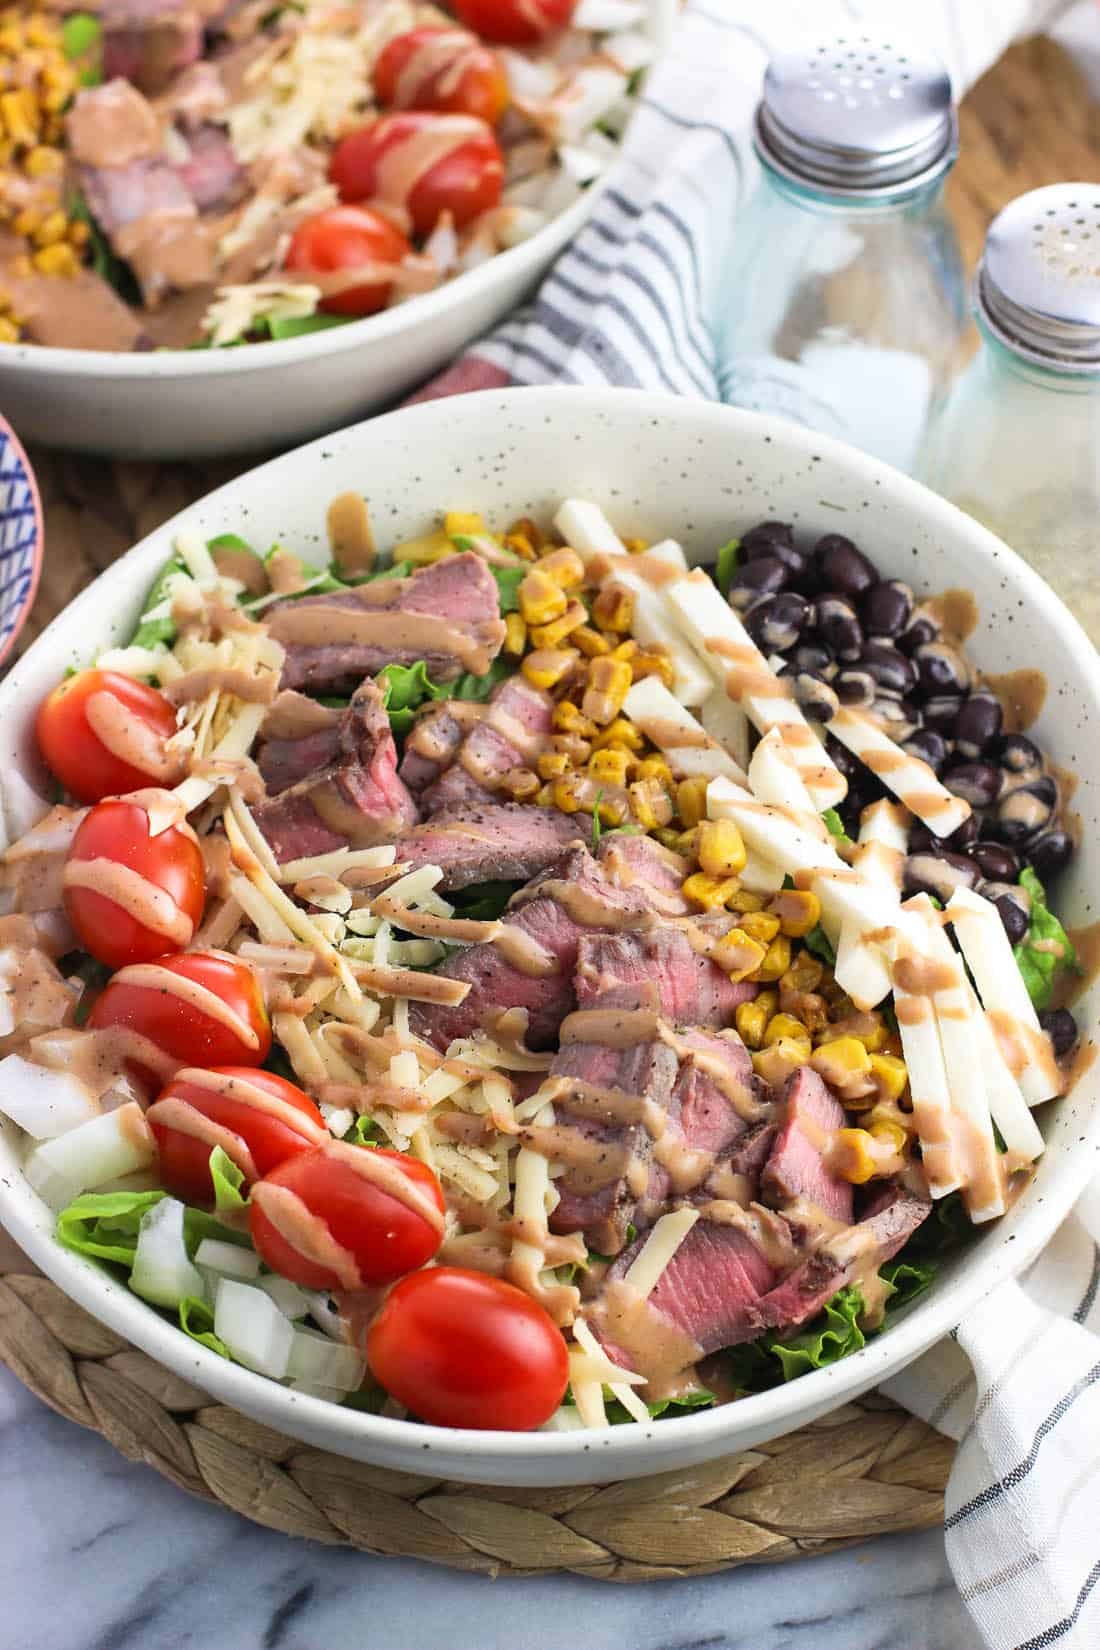 A steak salad with toppings arranged in neat lines on top.